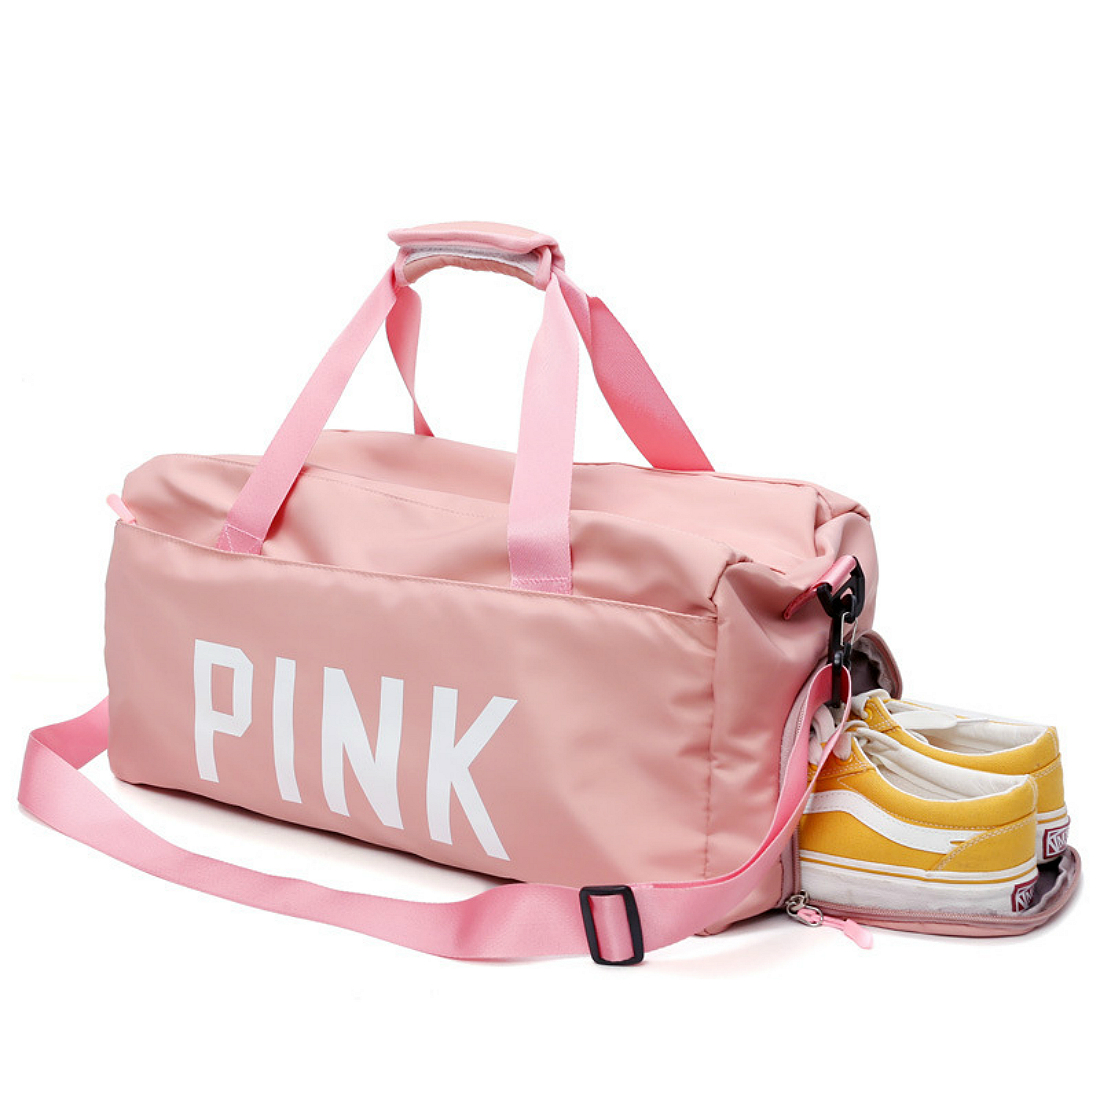 2eb7a0de1e9c US $16.11 38% OFF 2018 New BLACK Bag Girl Outdoor Sports Bag with Shoes  Storage Duffel Bag Women Gym Yoga Shoulder Bags Large Cheap-in Gym Bags  from ...